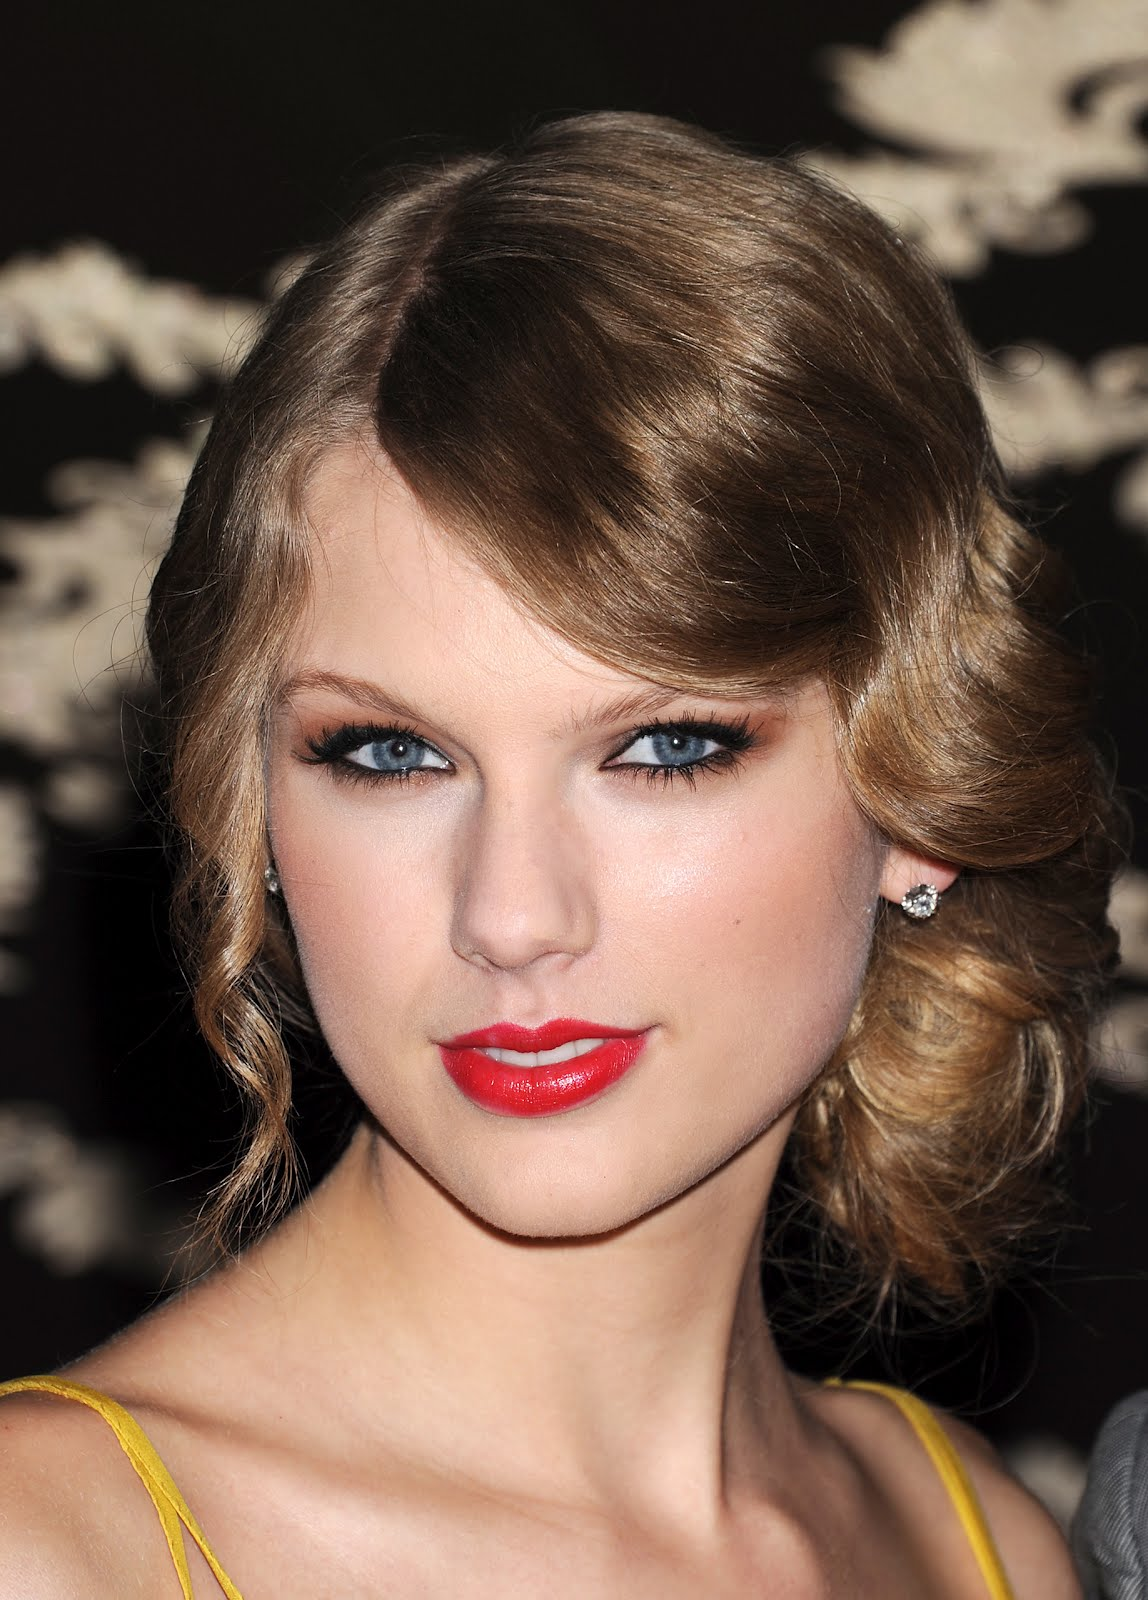 Taylor Swift Inspired Makeup Tutorial: Beauty Models Images: Taylor Swift